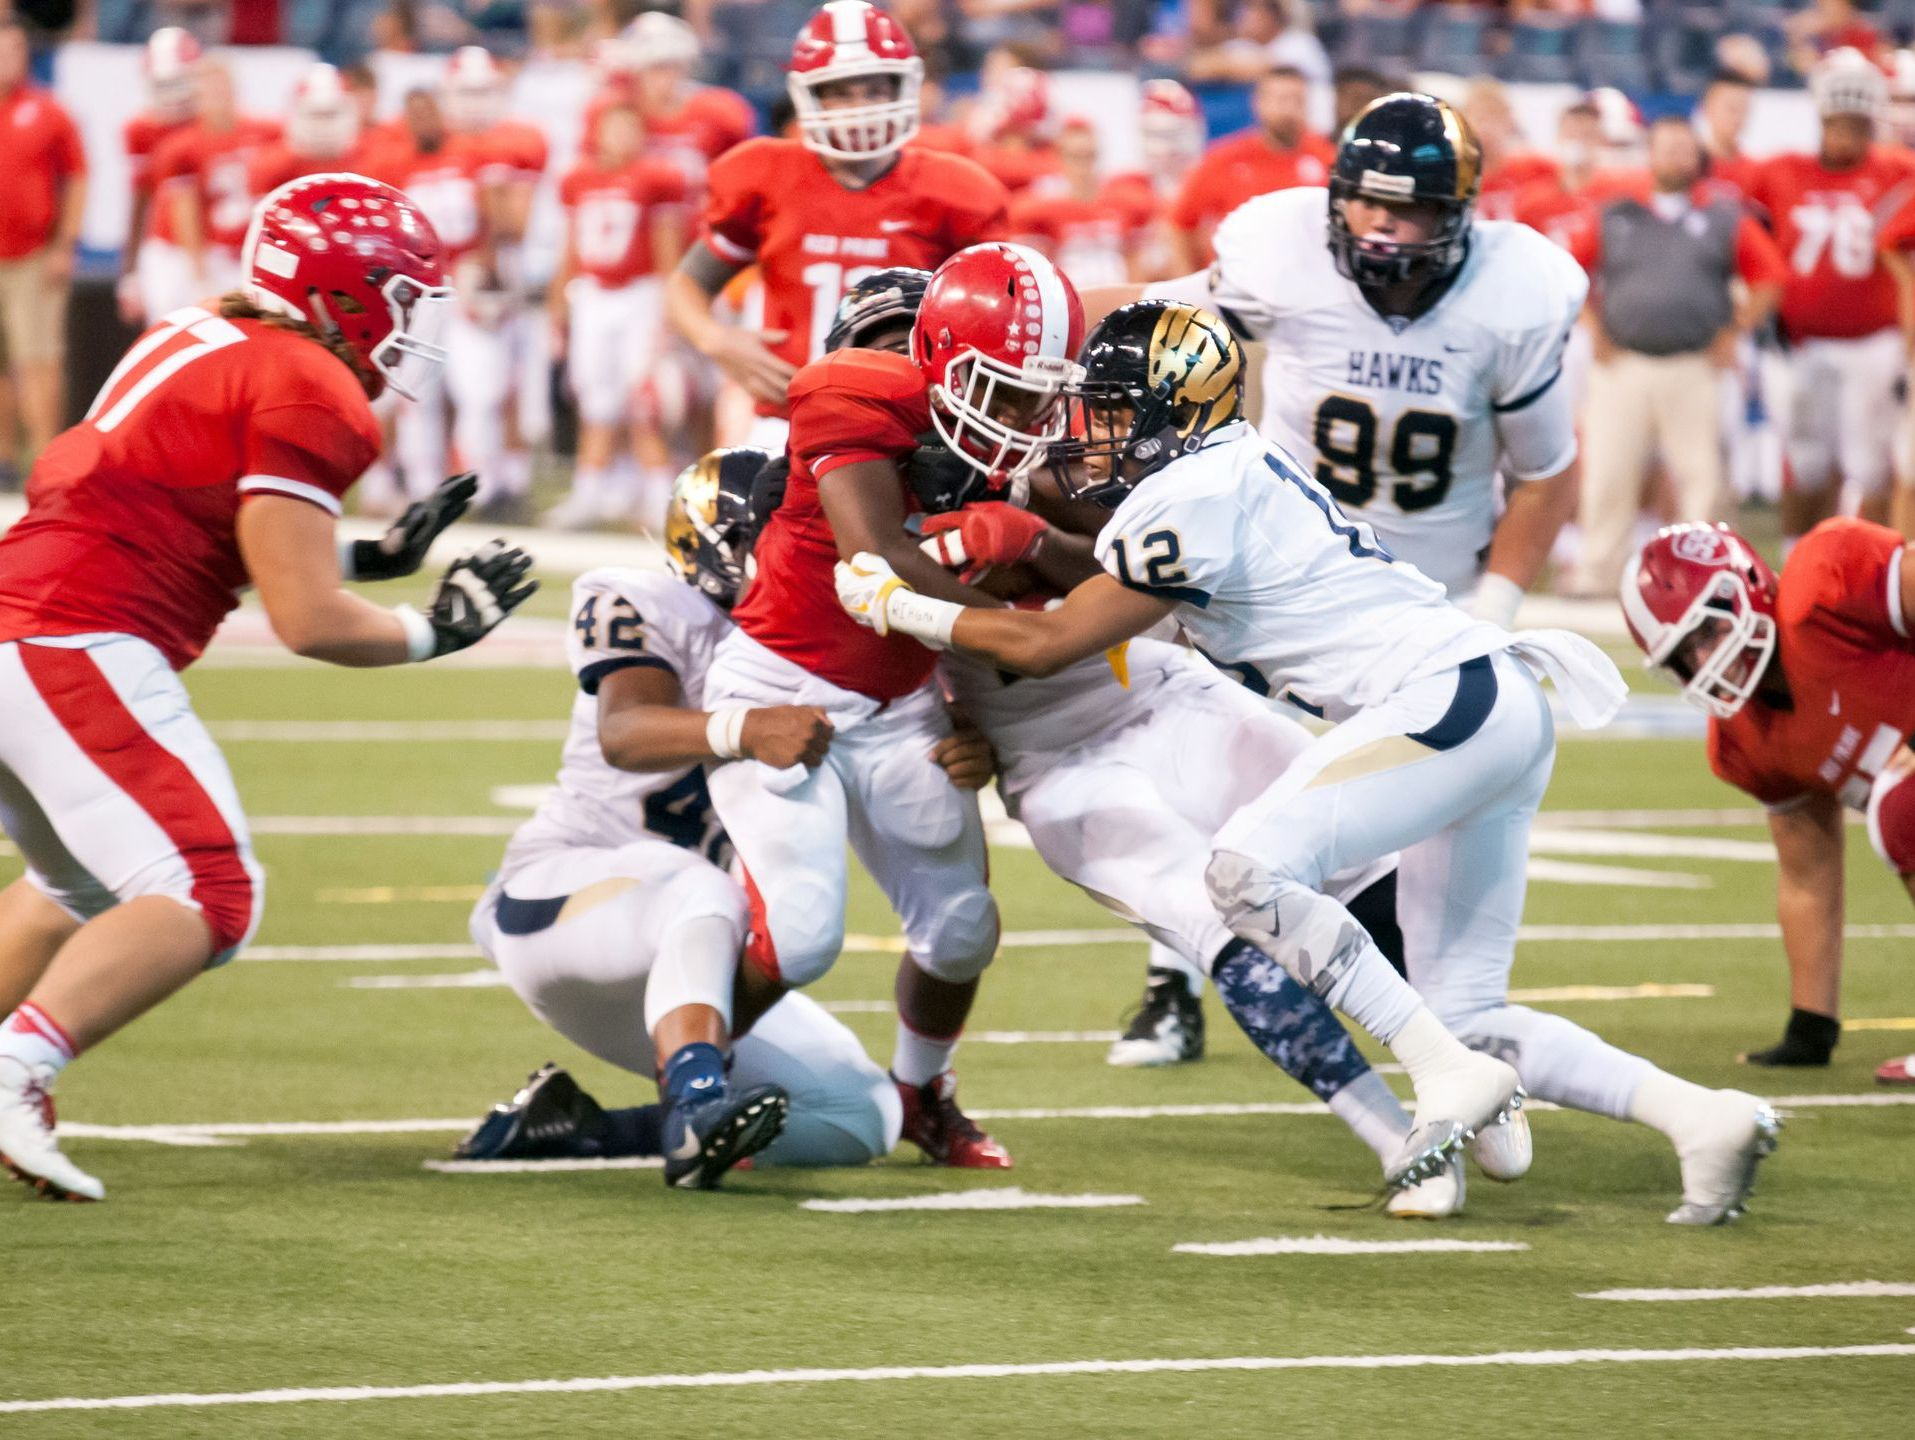 Decatur Central sophomore safety Larry Tracy III (12) making tackle vs. Plainfield at Lucas Oil Stadium.